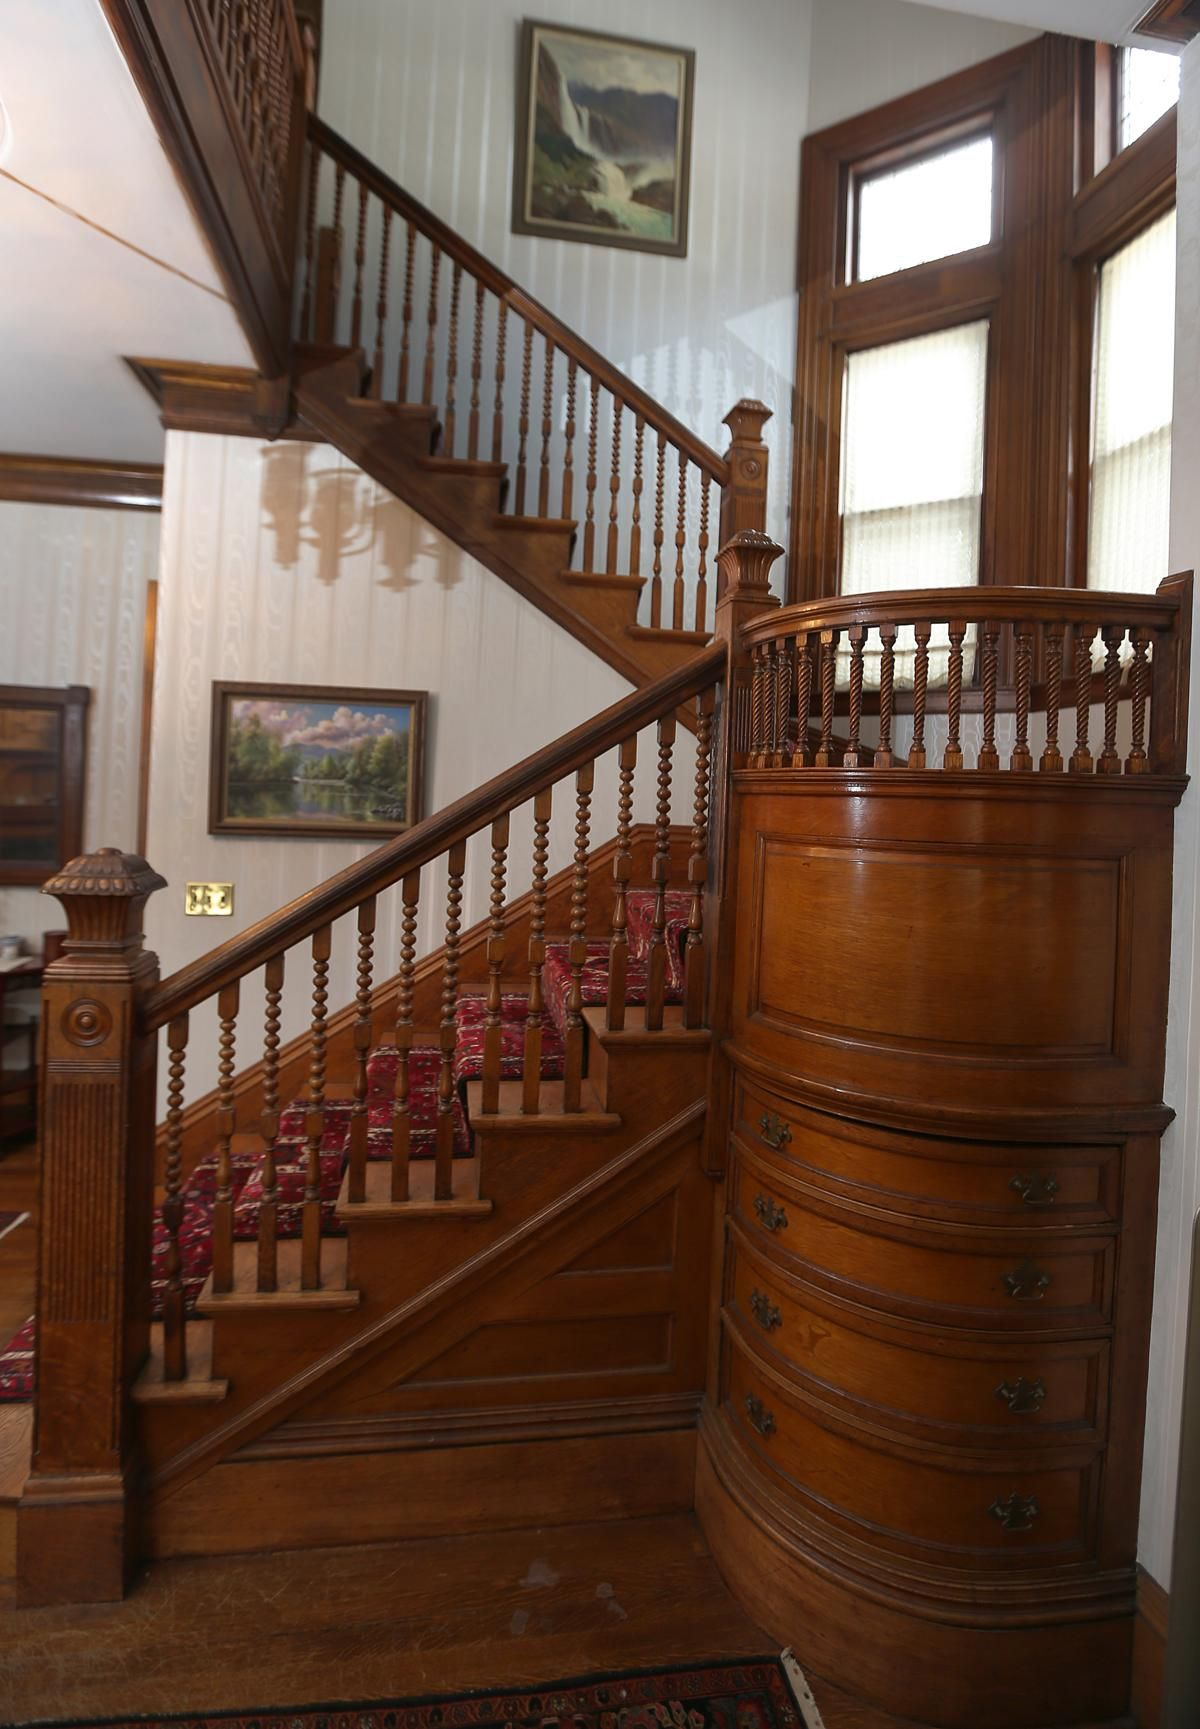 15 Interior Design Ideas For A Victorian Themed Home: Victorian Carved Staircase With Handy But Beautiful Storage